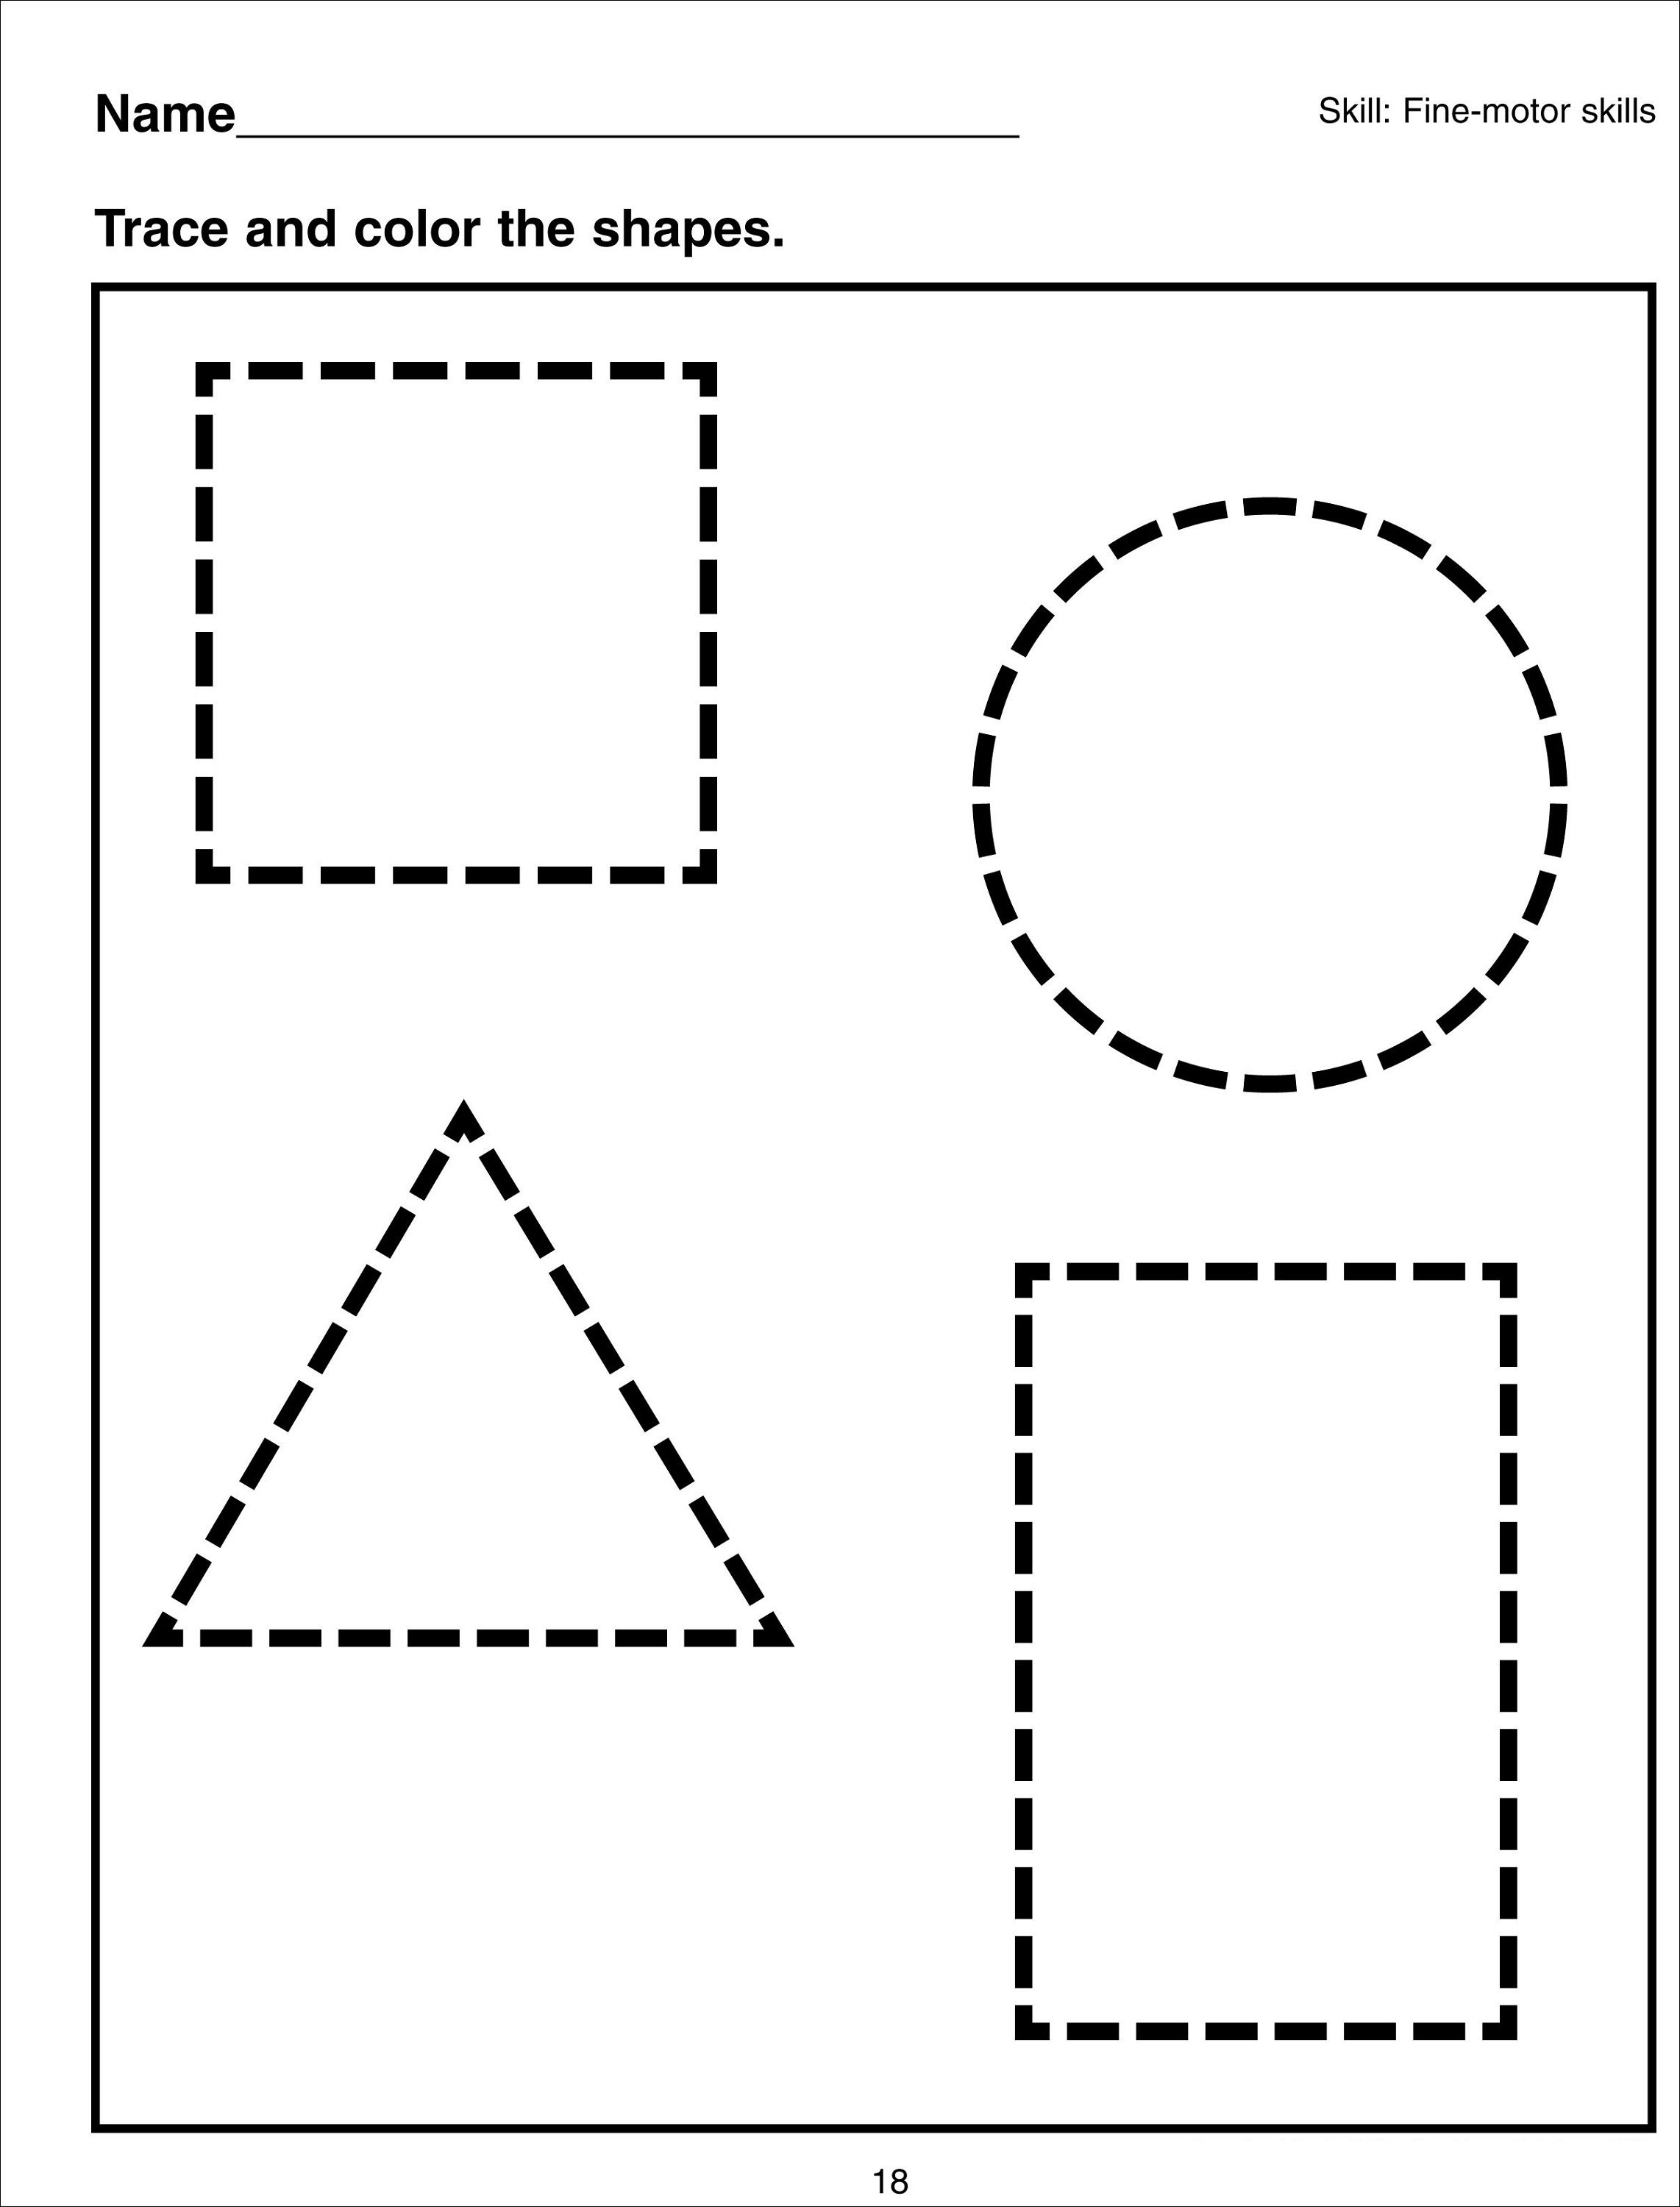 10 Best Matching Shapes Worksheets For Preschool Images On